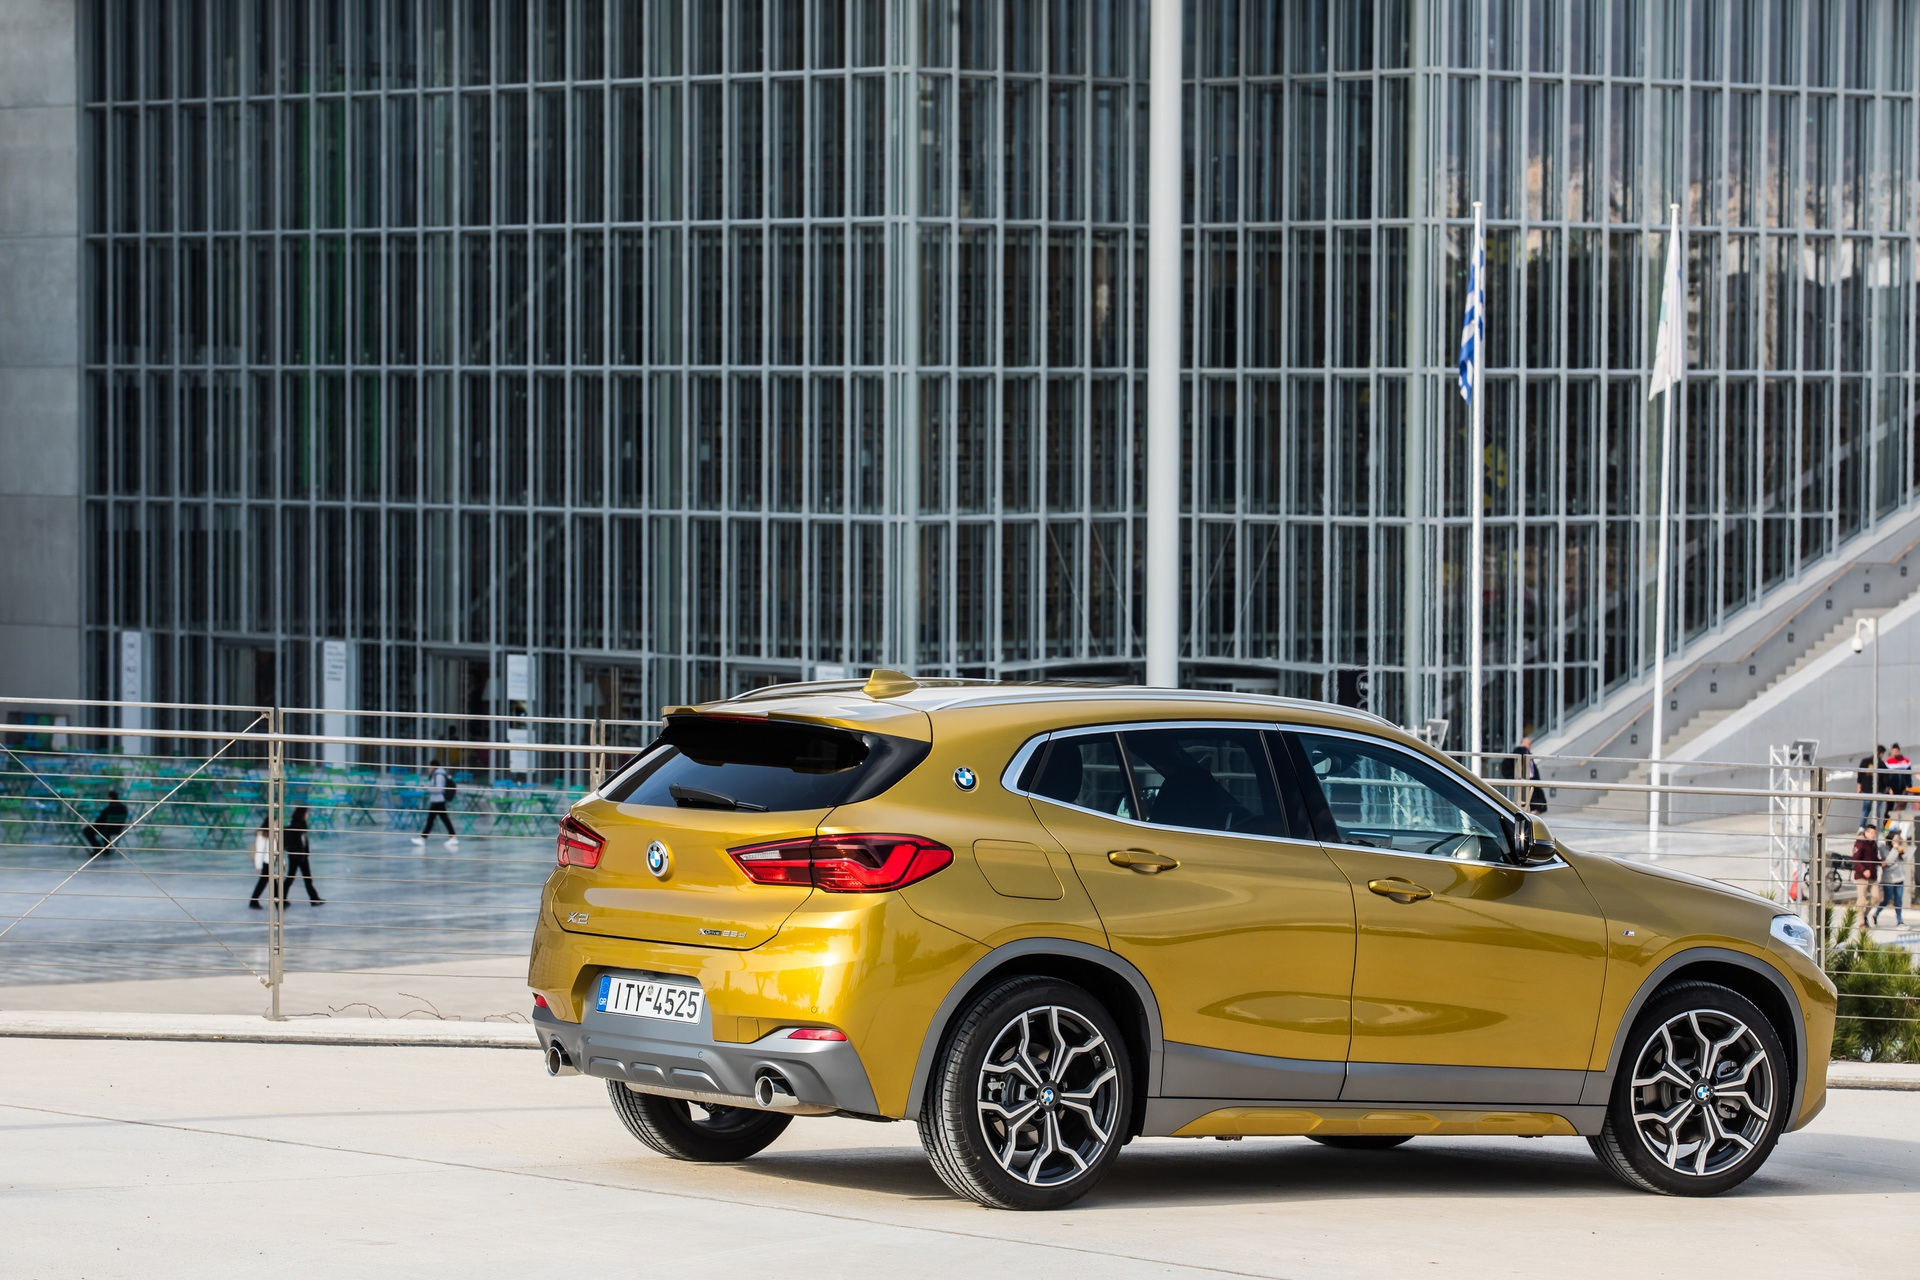 BMW_X2_Greek_presskit_0086